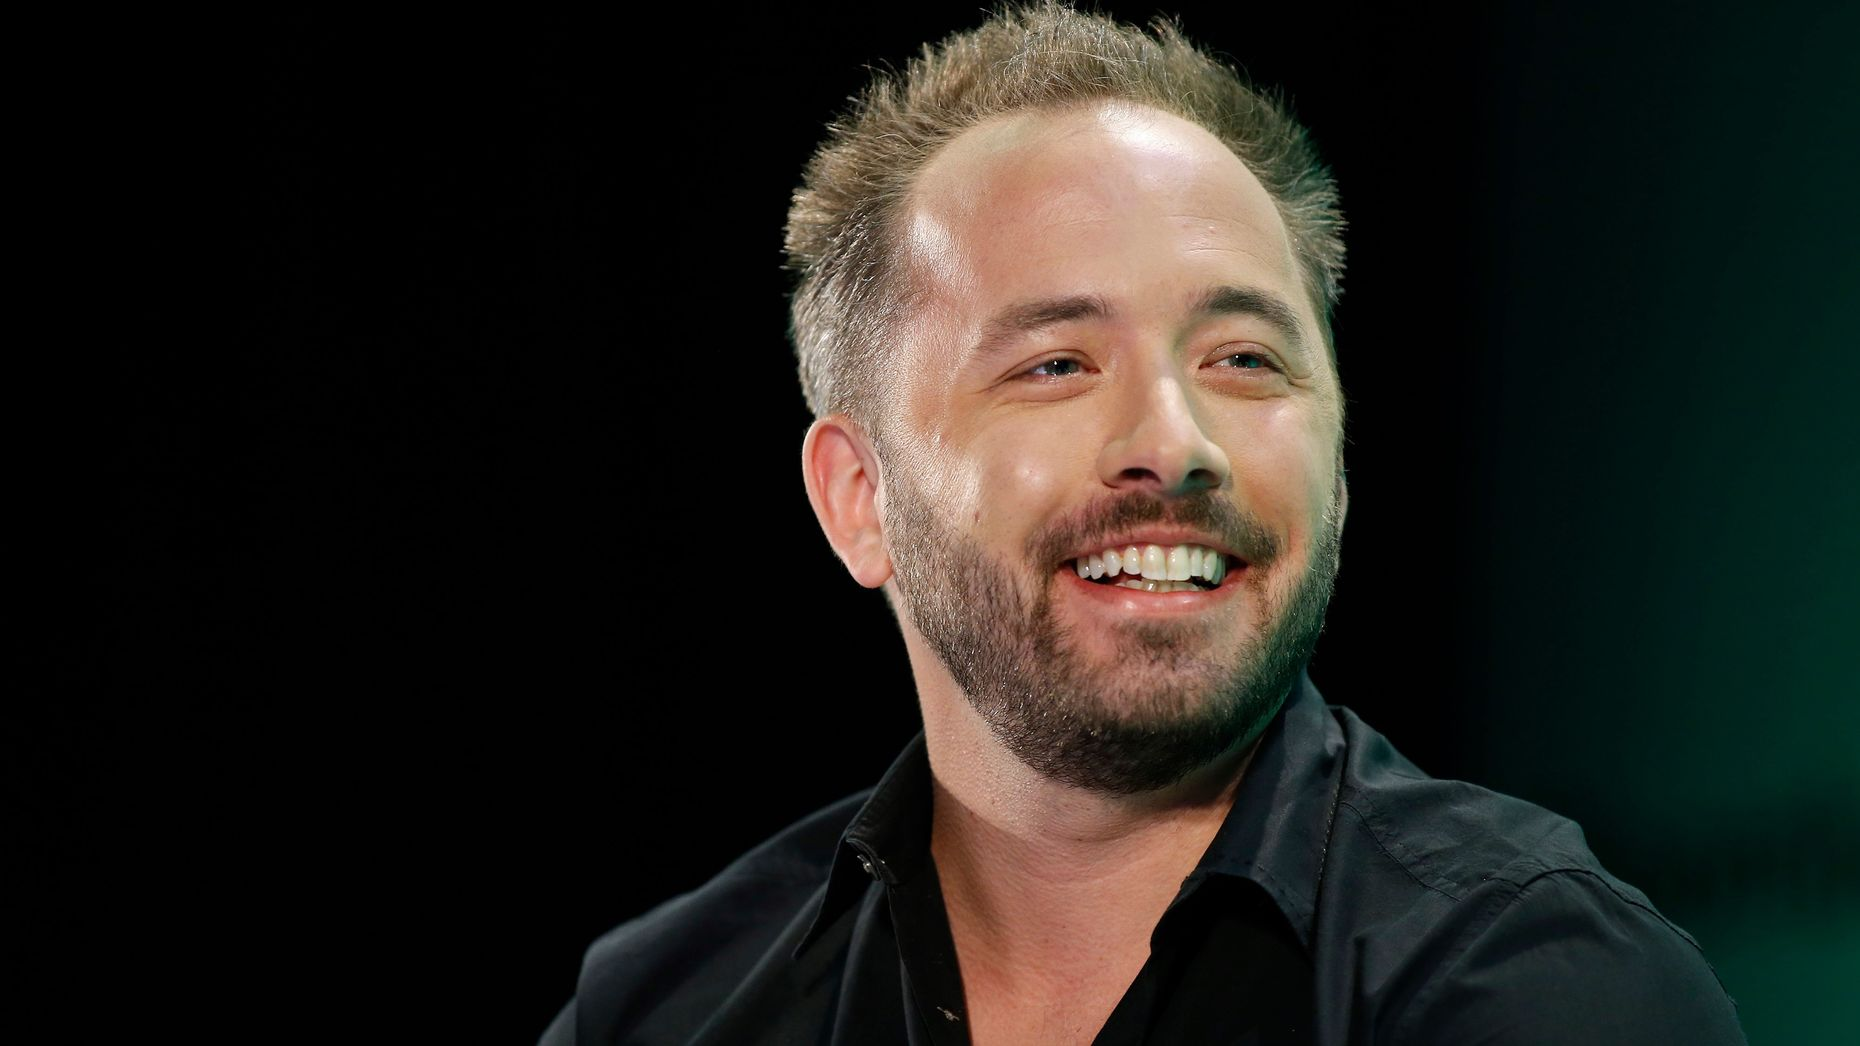 Dropbox co-founder and CEO Drew Houston. Photo by Bloomberg.